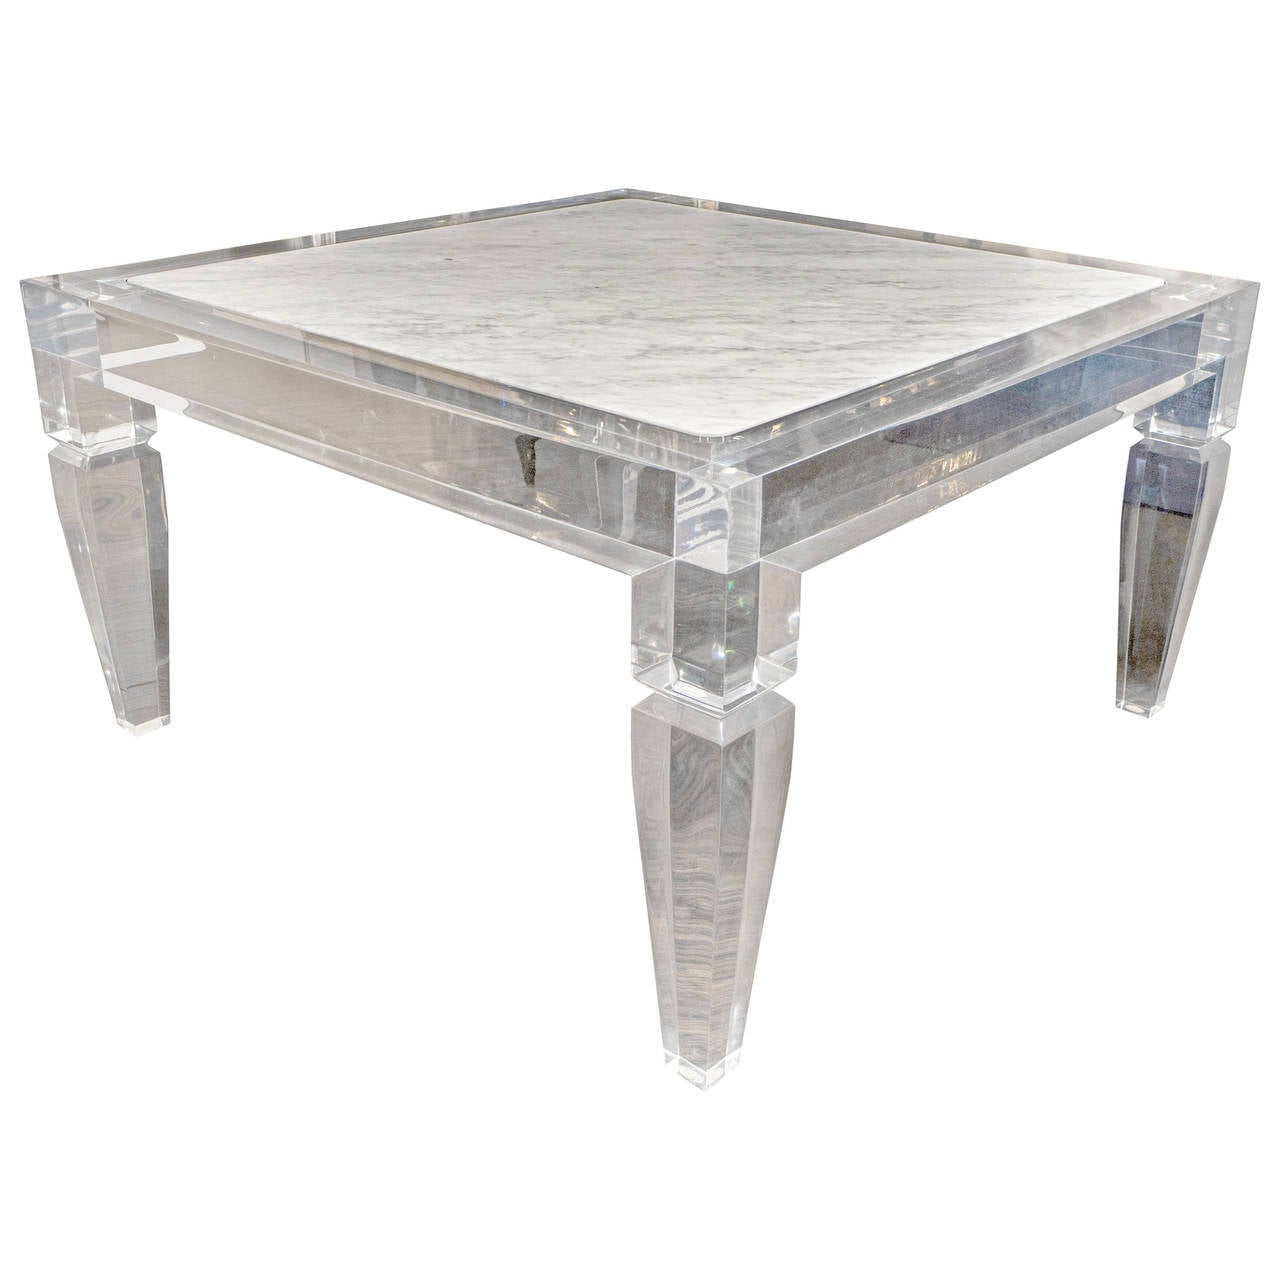 Custom Lucite Table With Carrera Marble Inset Top For Sale At 1stdibs